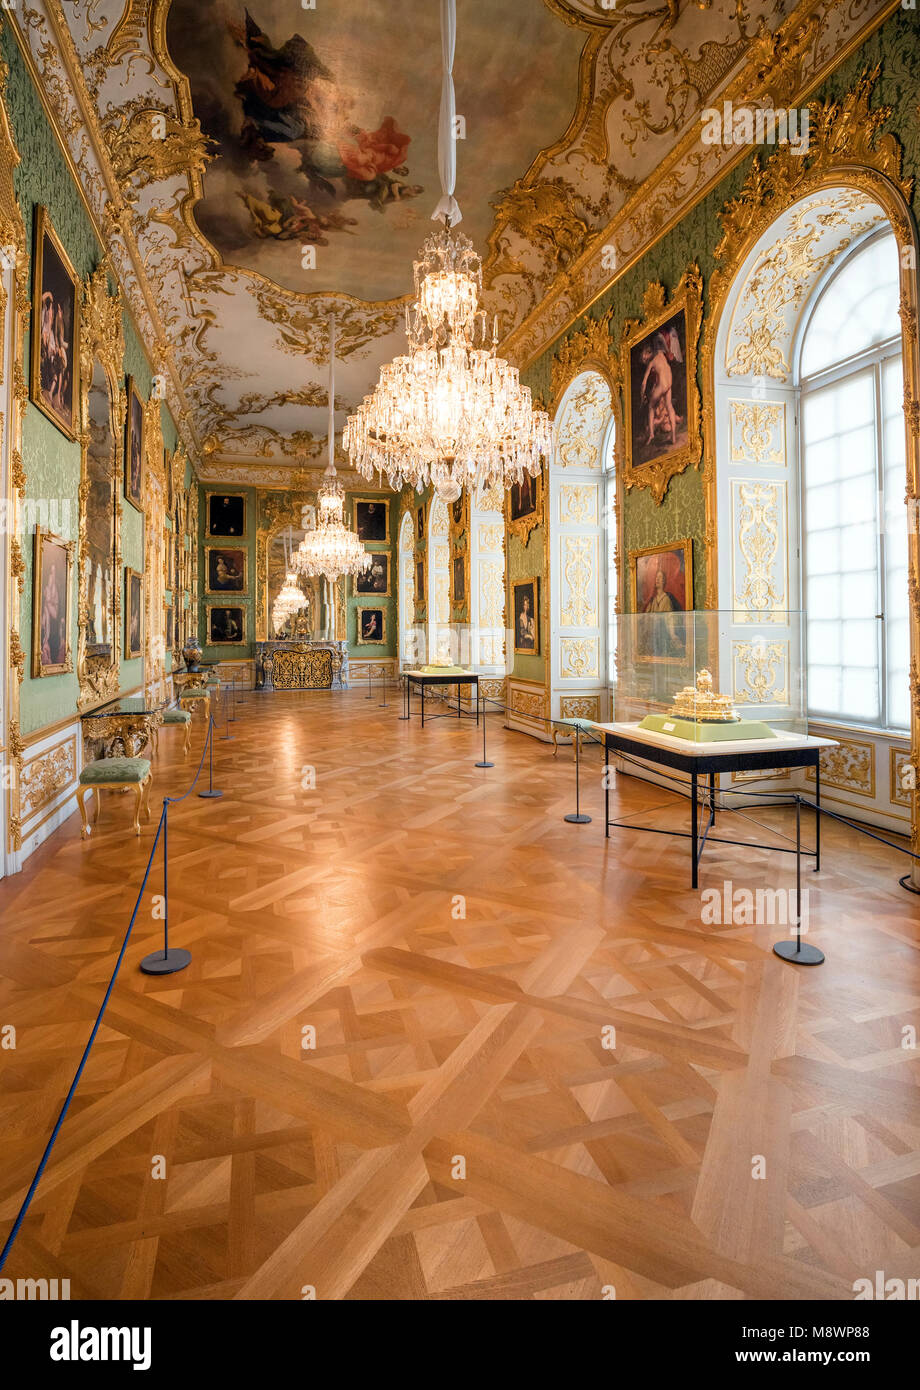 The Munich Residence served as the seat of government and residence of the Bavarian dukes, electors and kings from - Stock Image